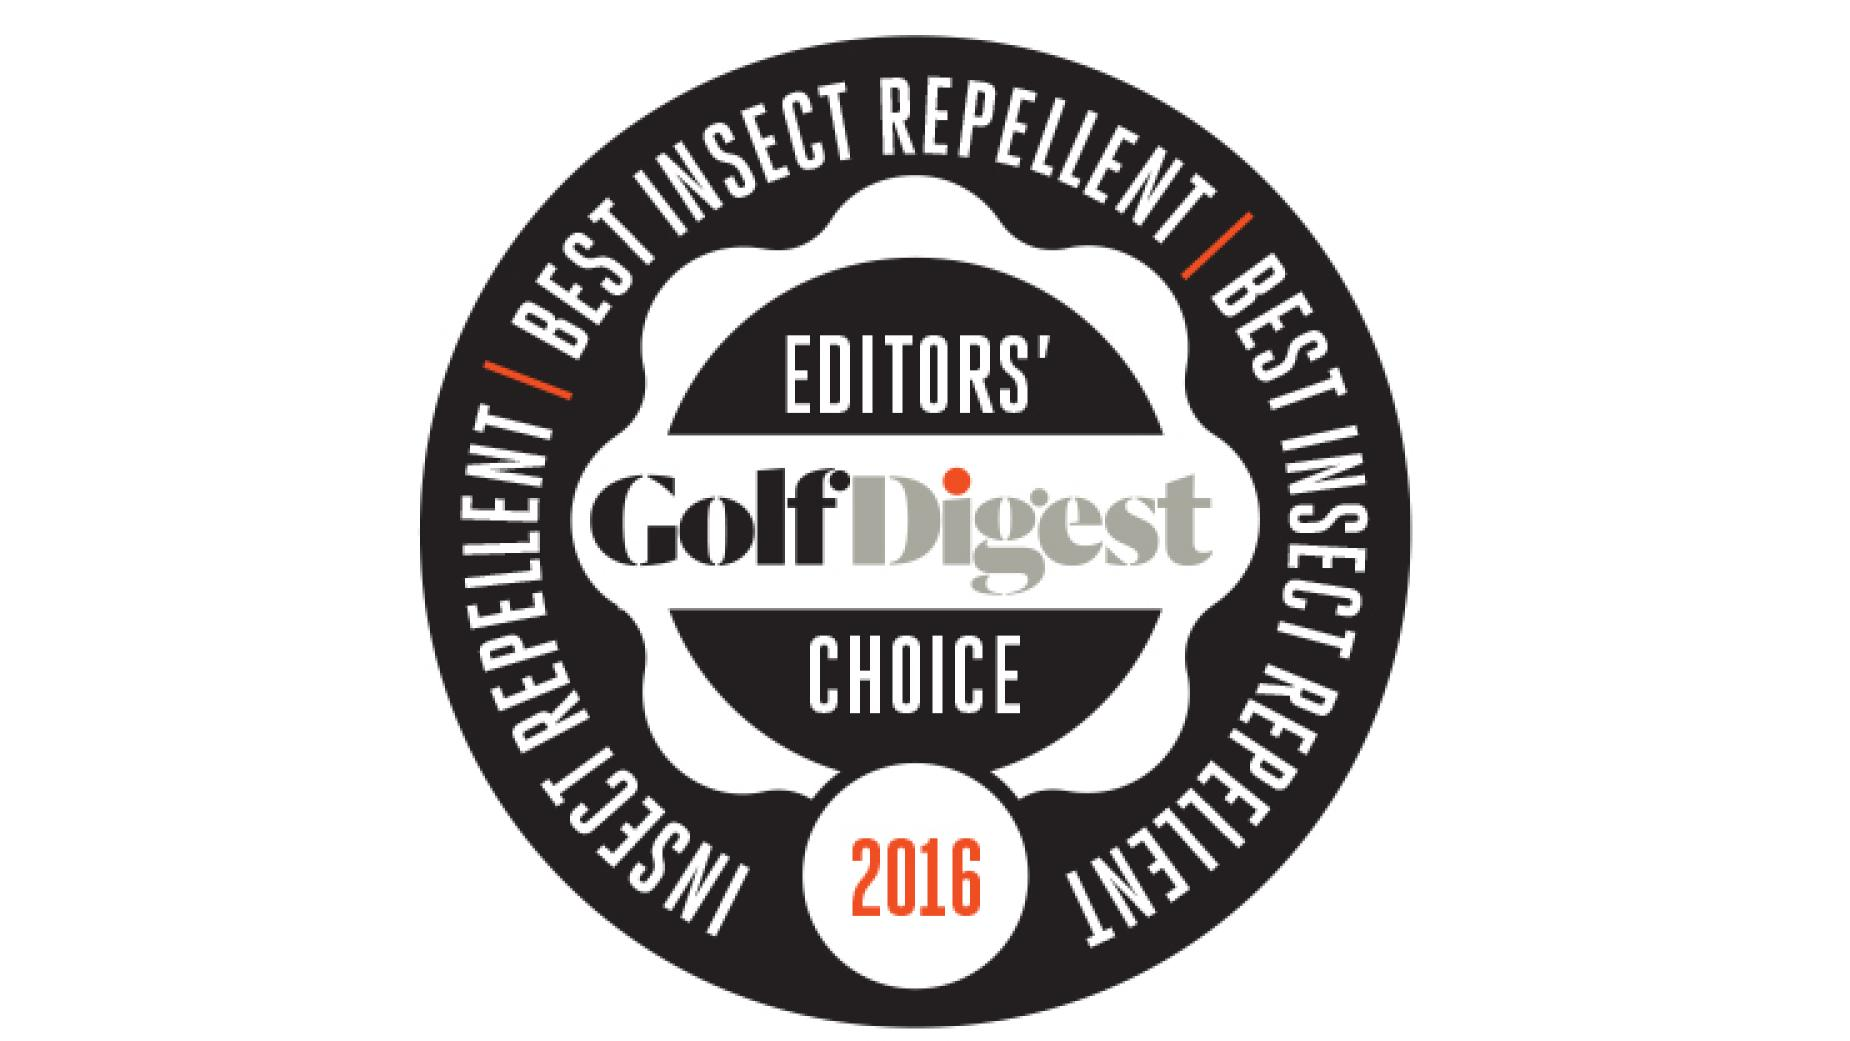 editors-choice-2016-badge-insect-repellent.jpg